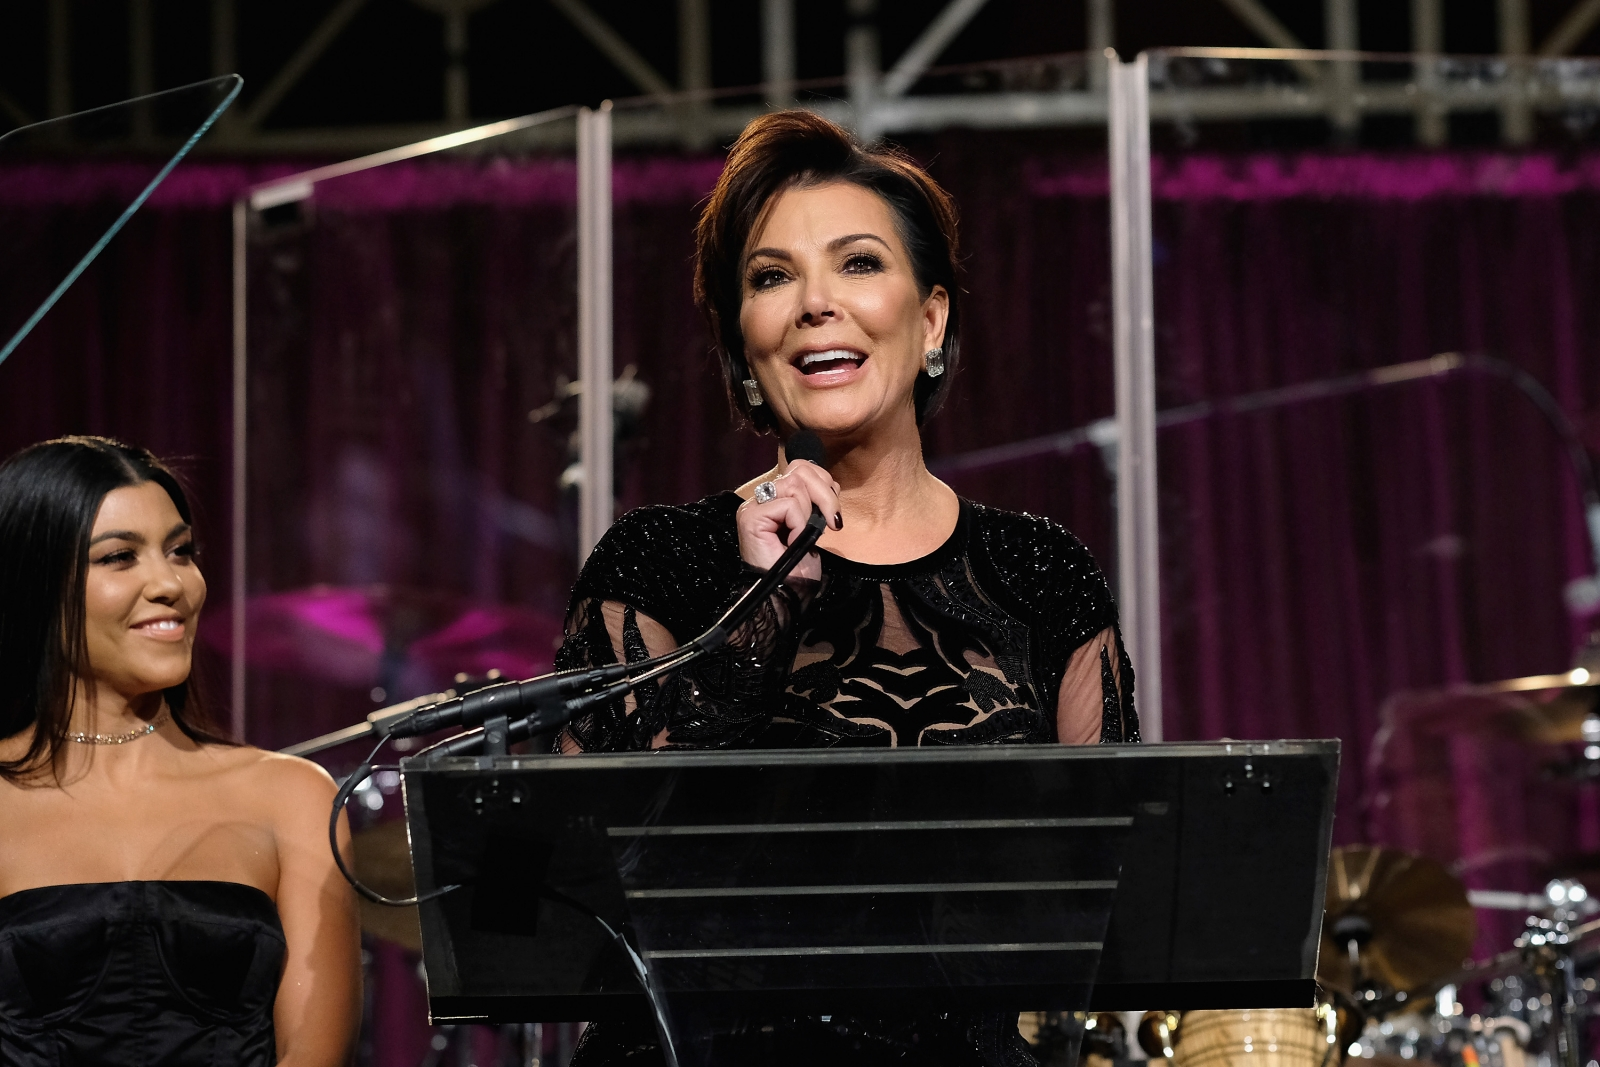 Kris Jenner ignores Caitlyn Jenner again on Father's Day but praises son Rob as the most loving dad